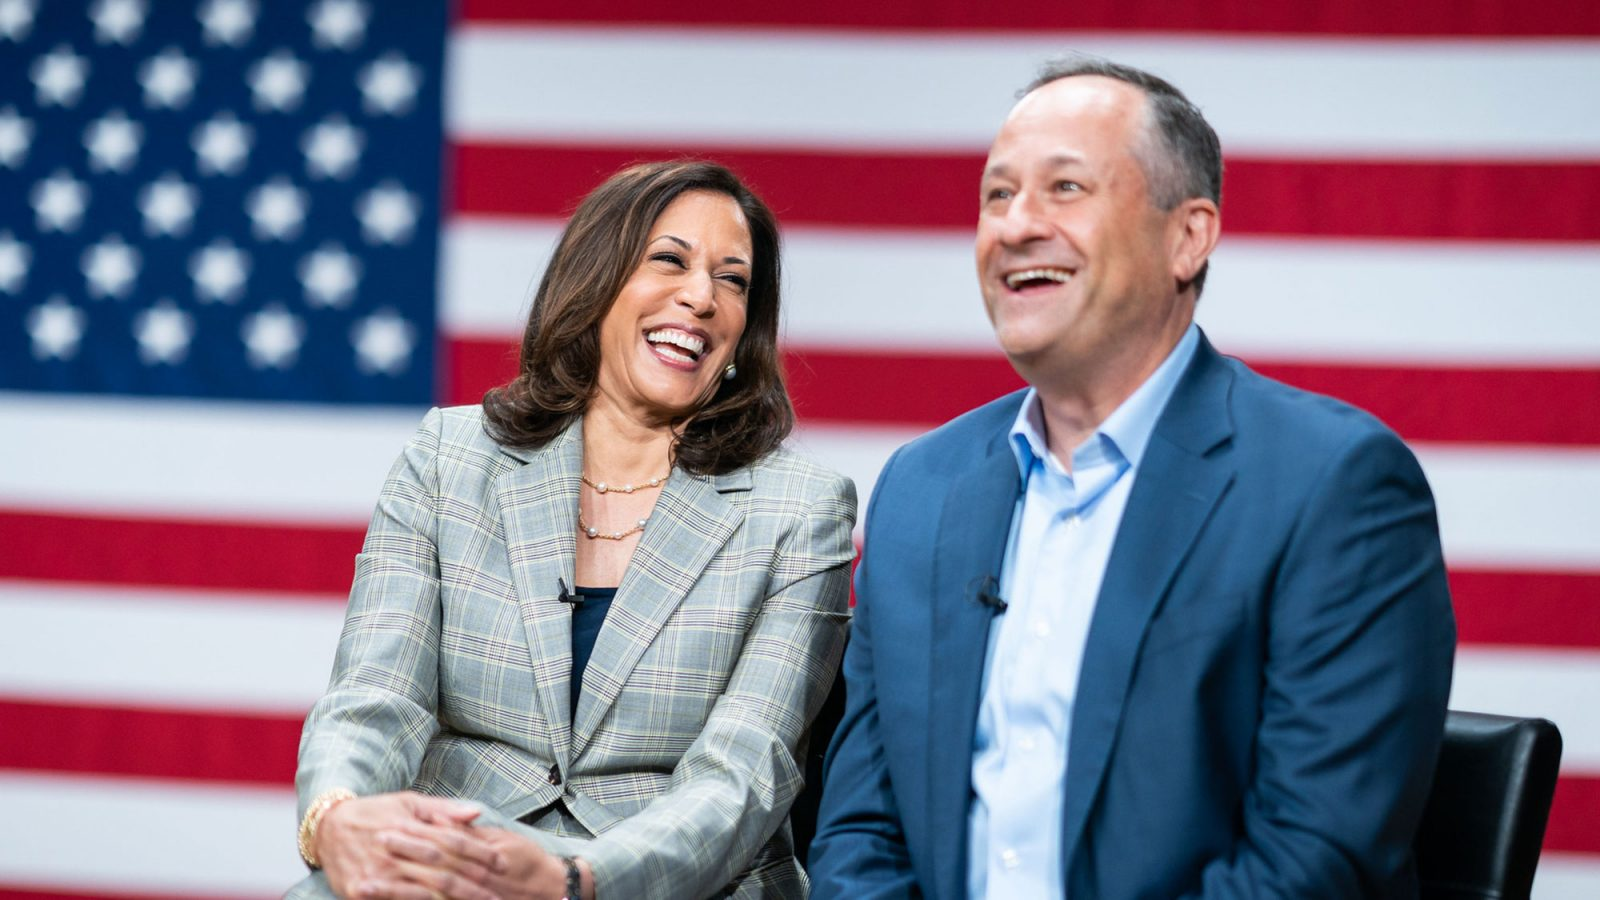 Kamala Harris and Douglas Emhoff share a laugh with the American flag in the background.